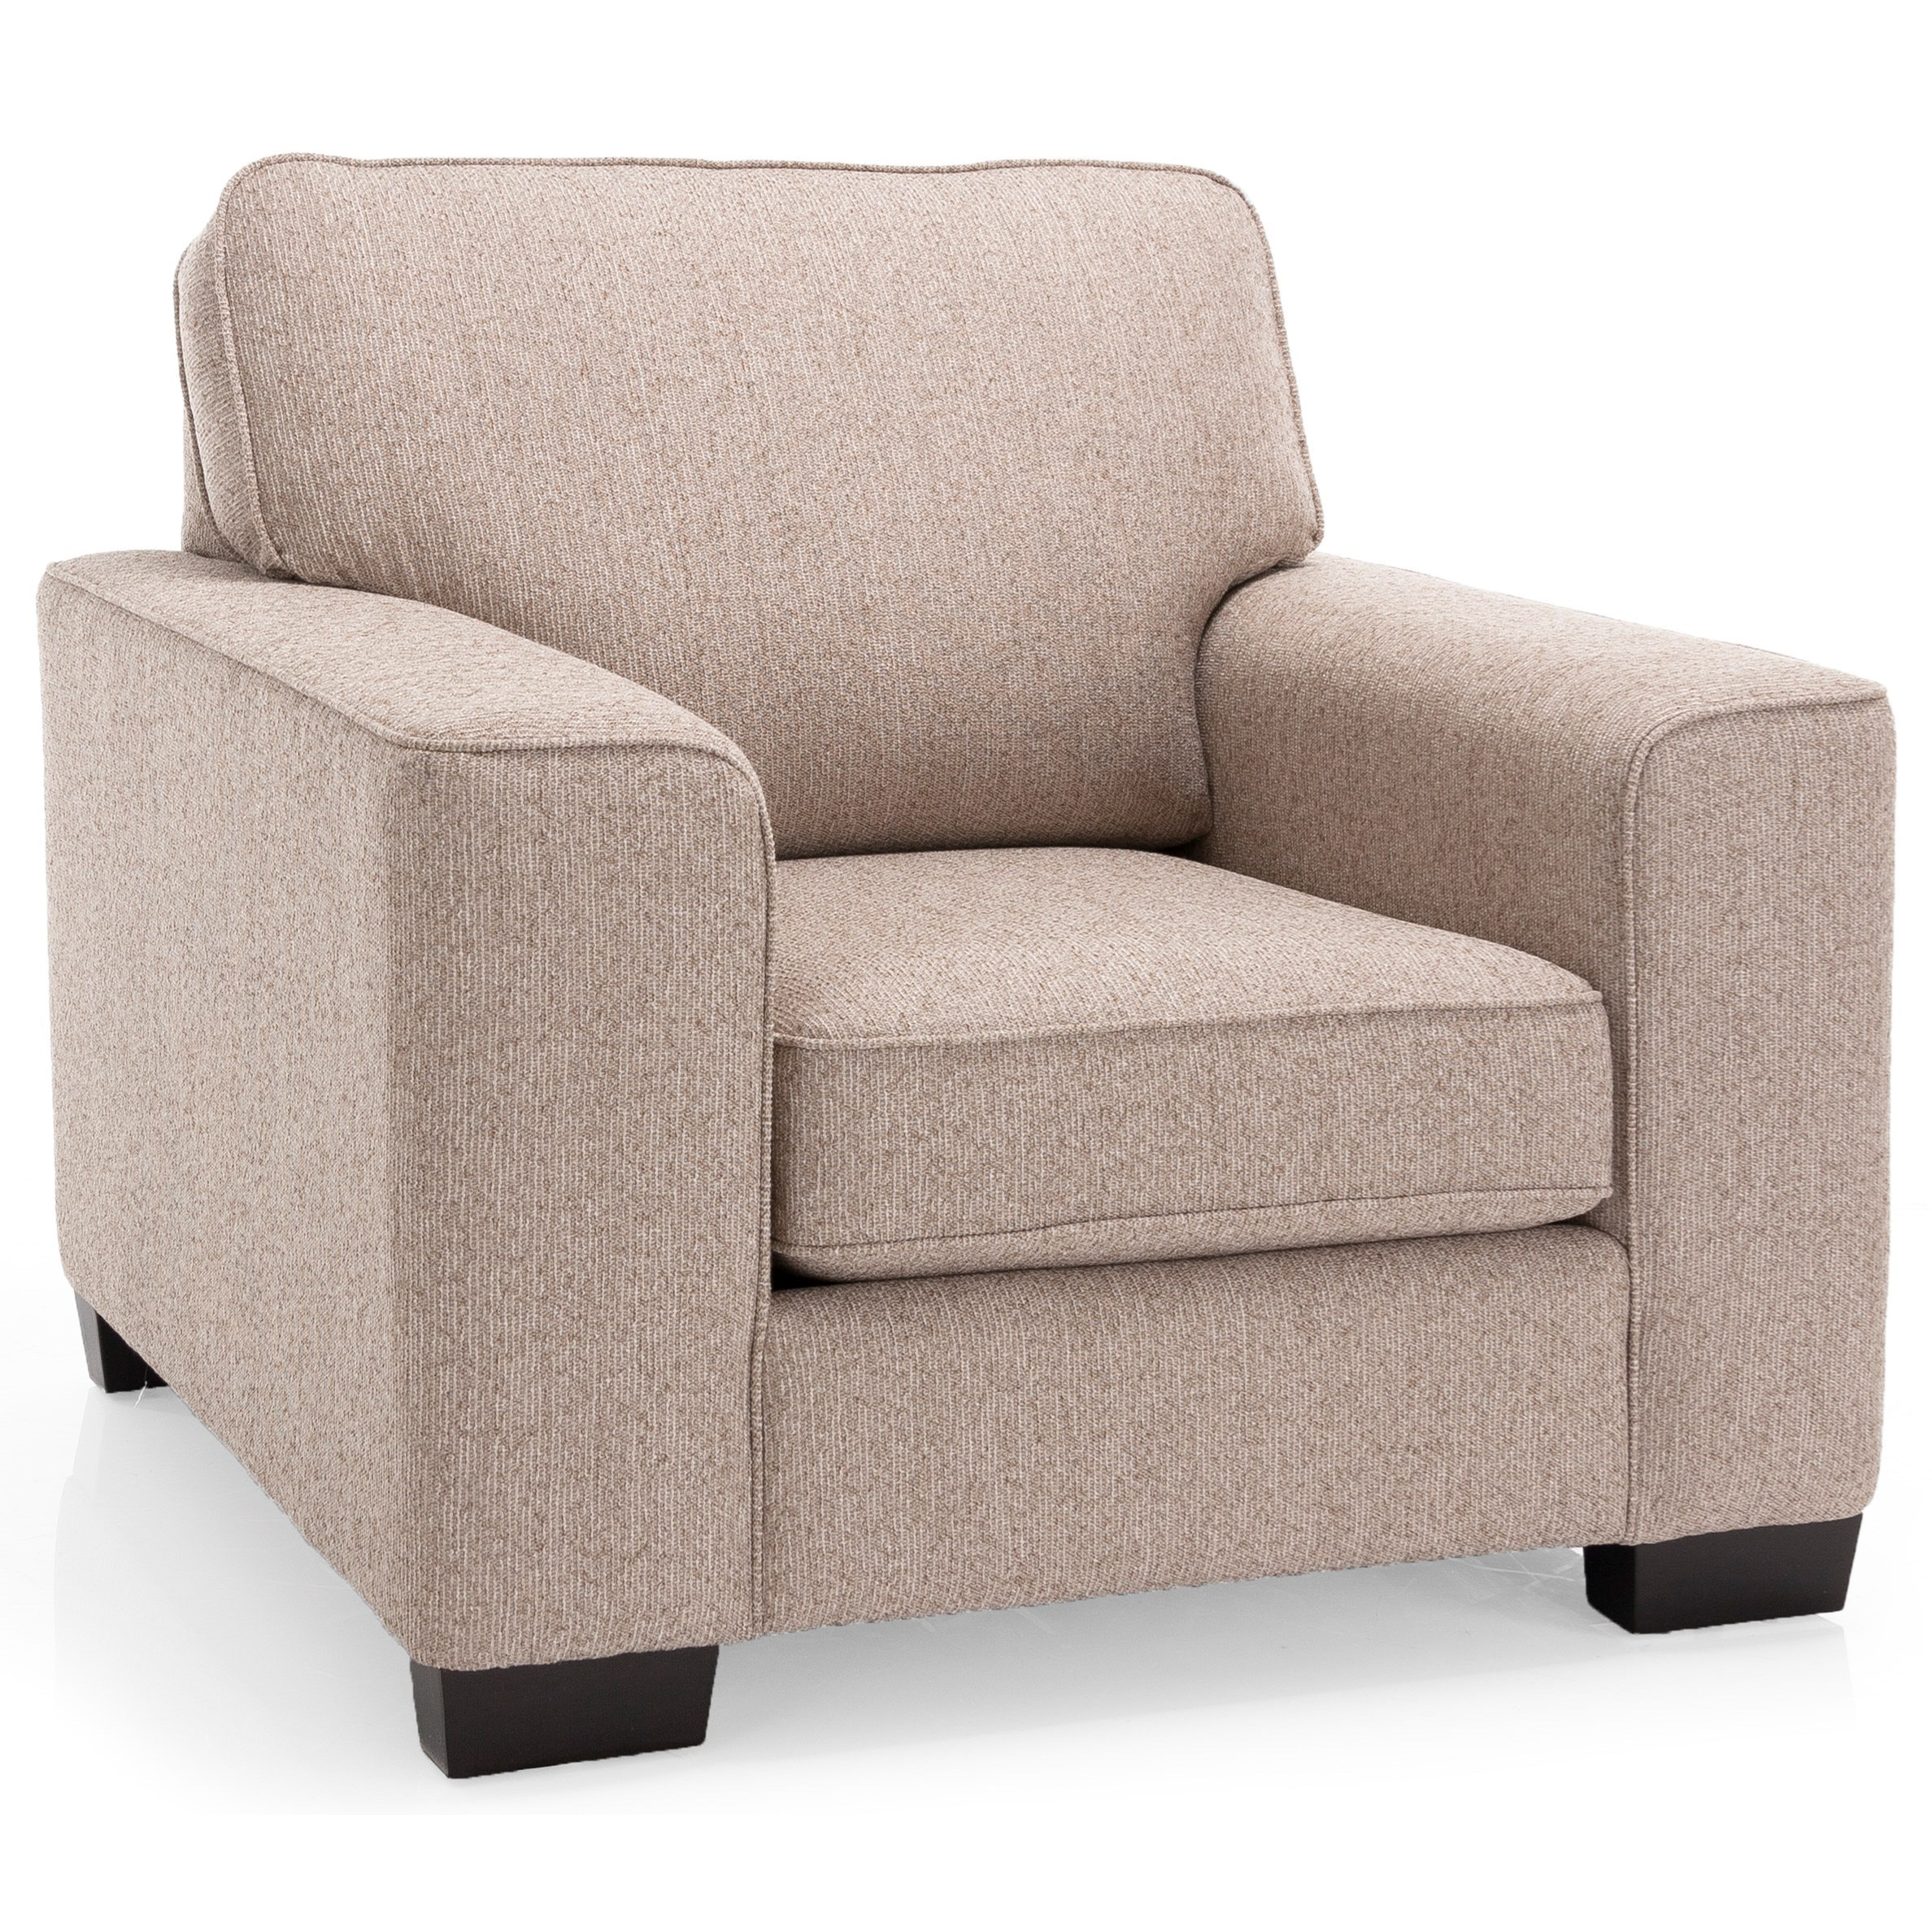 2483 Chair by Decor-Rest at Fine Home Furnishings